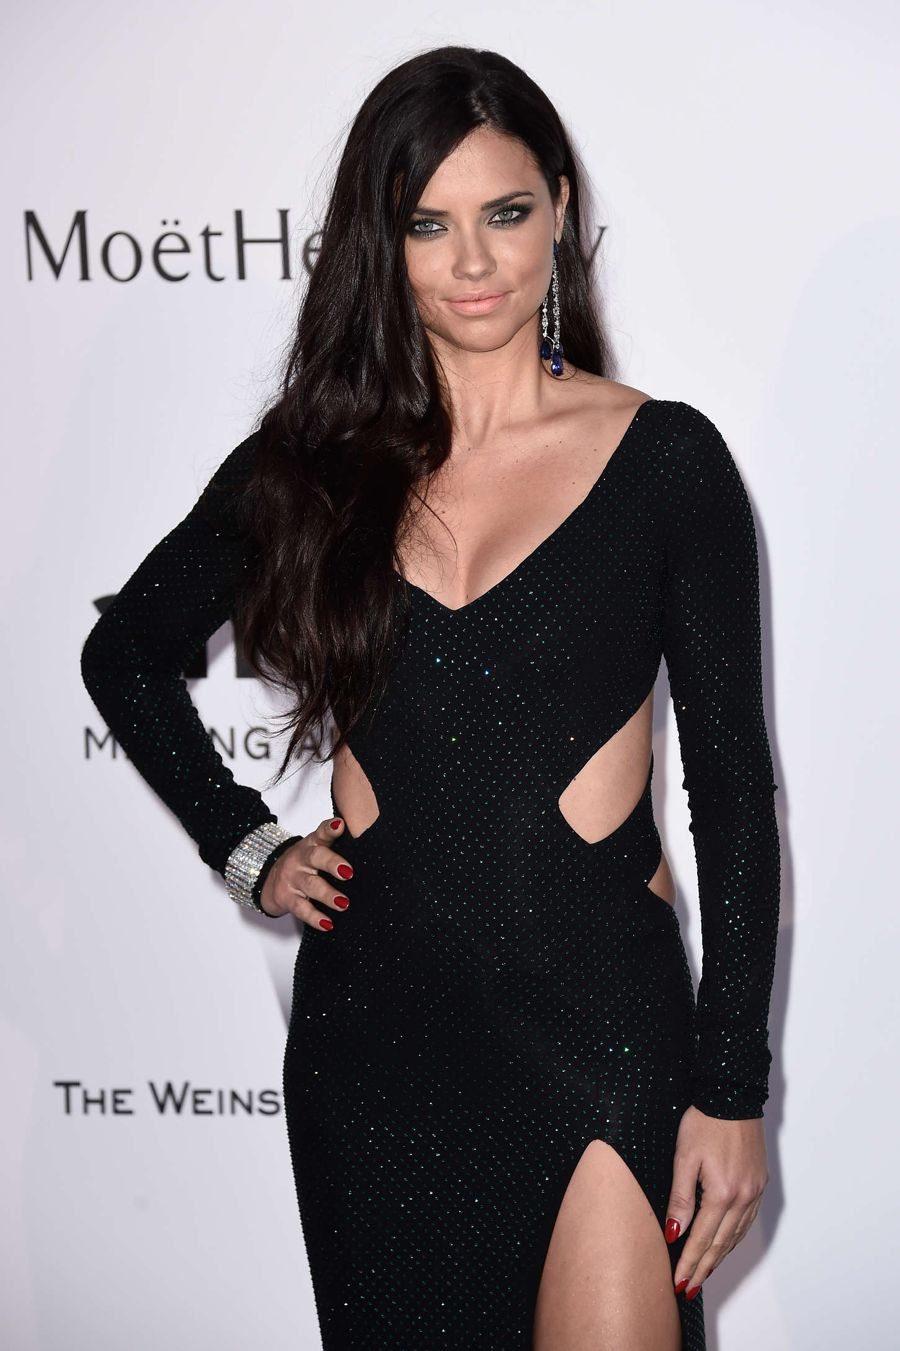 Adriana Lima Steals the Spotlight in amfAR Gala